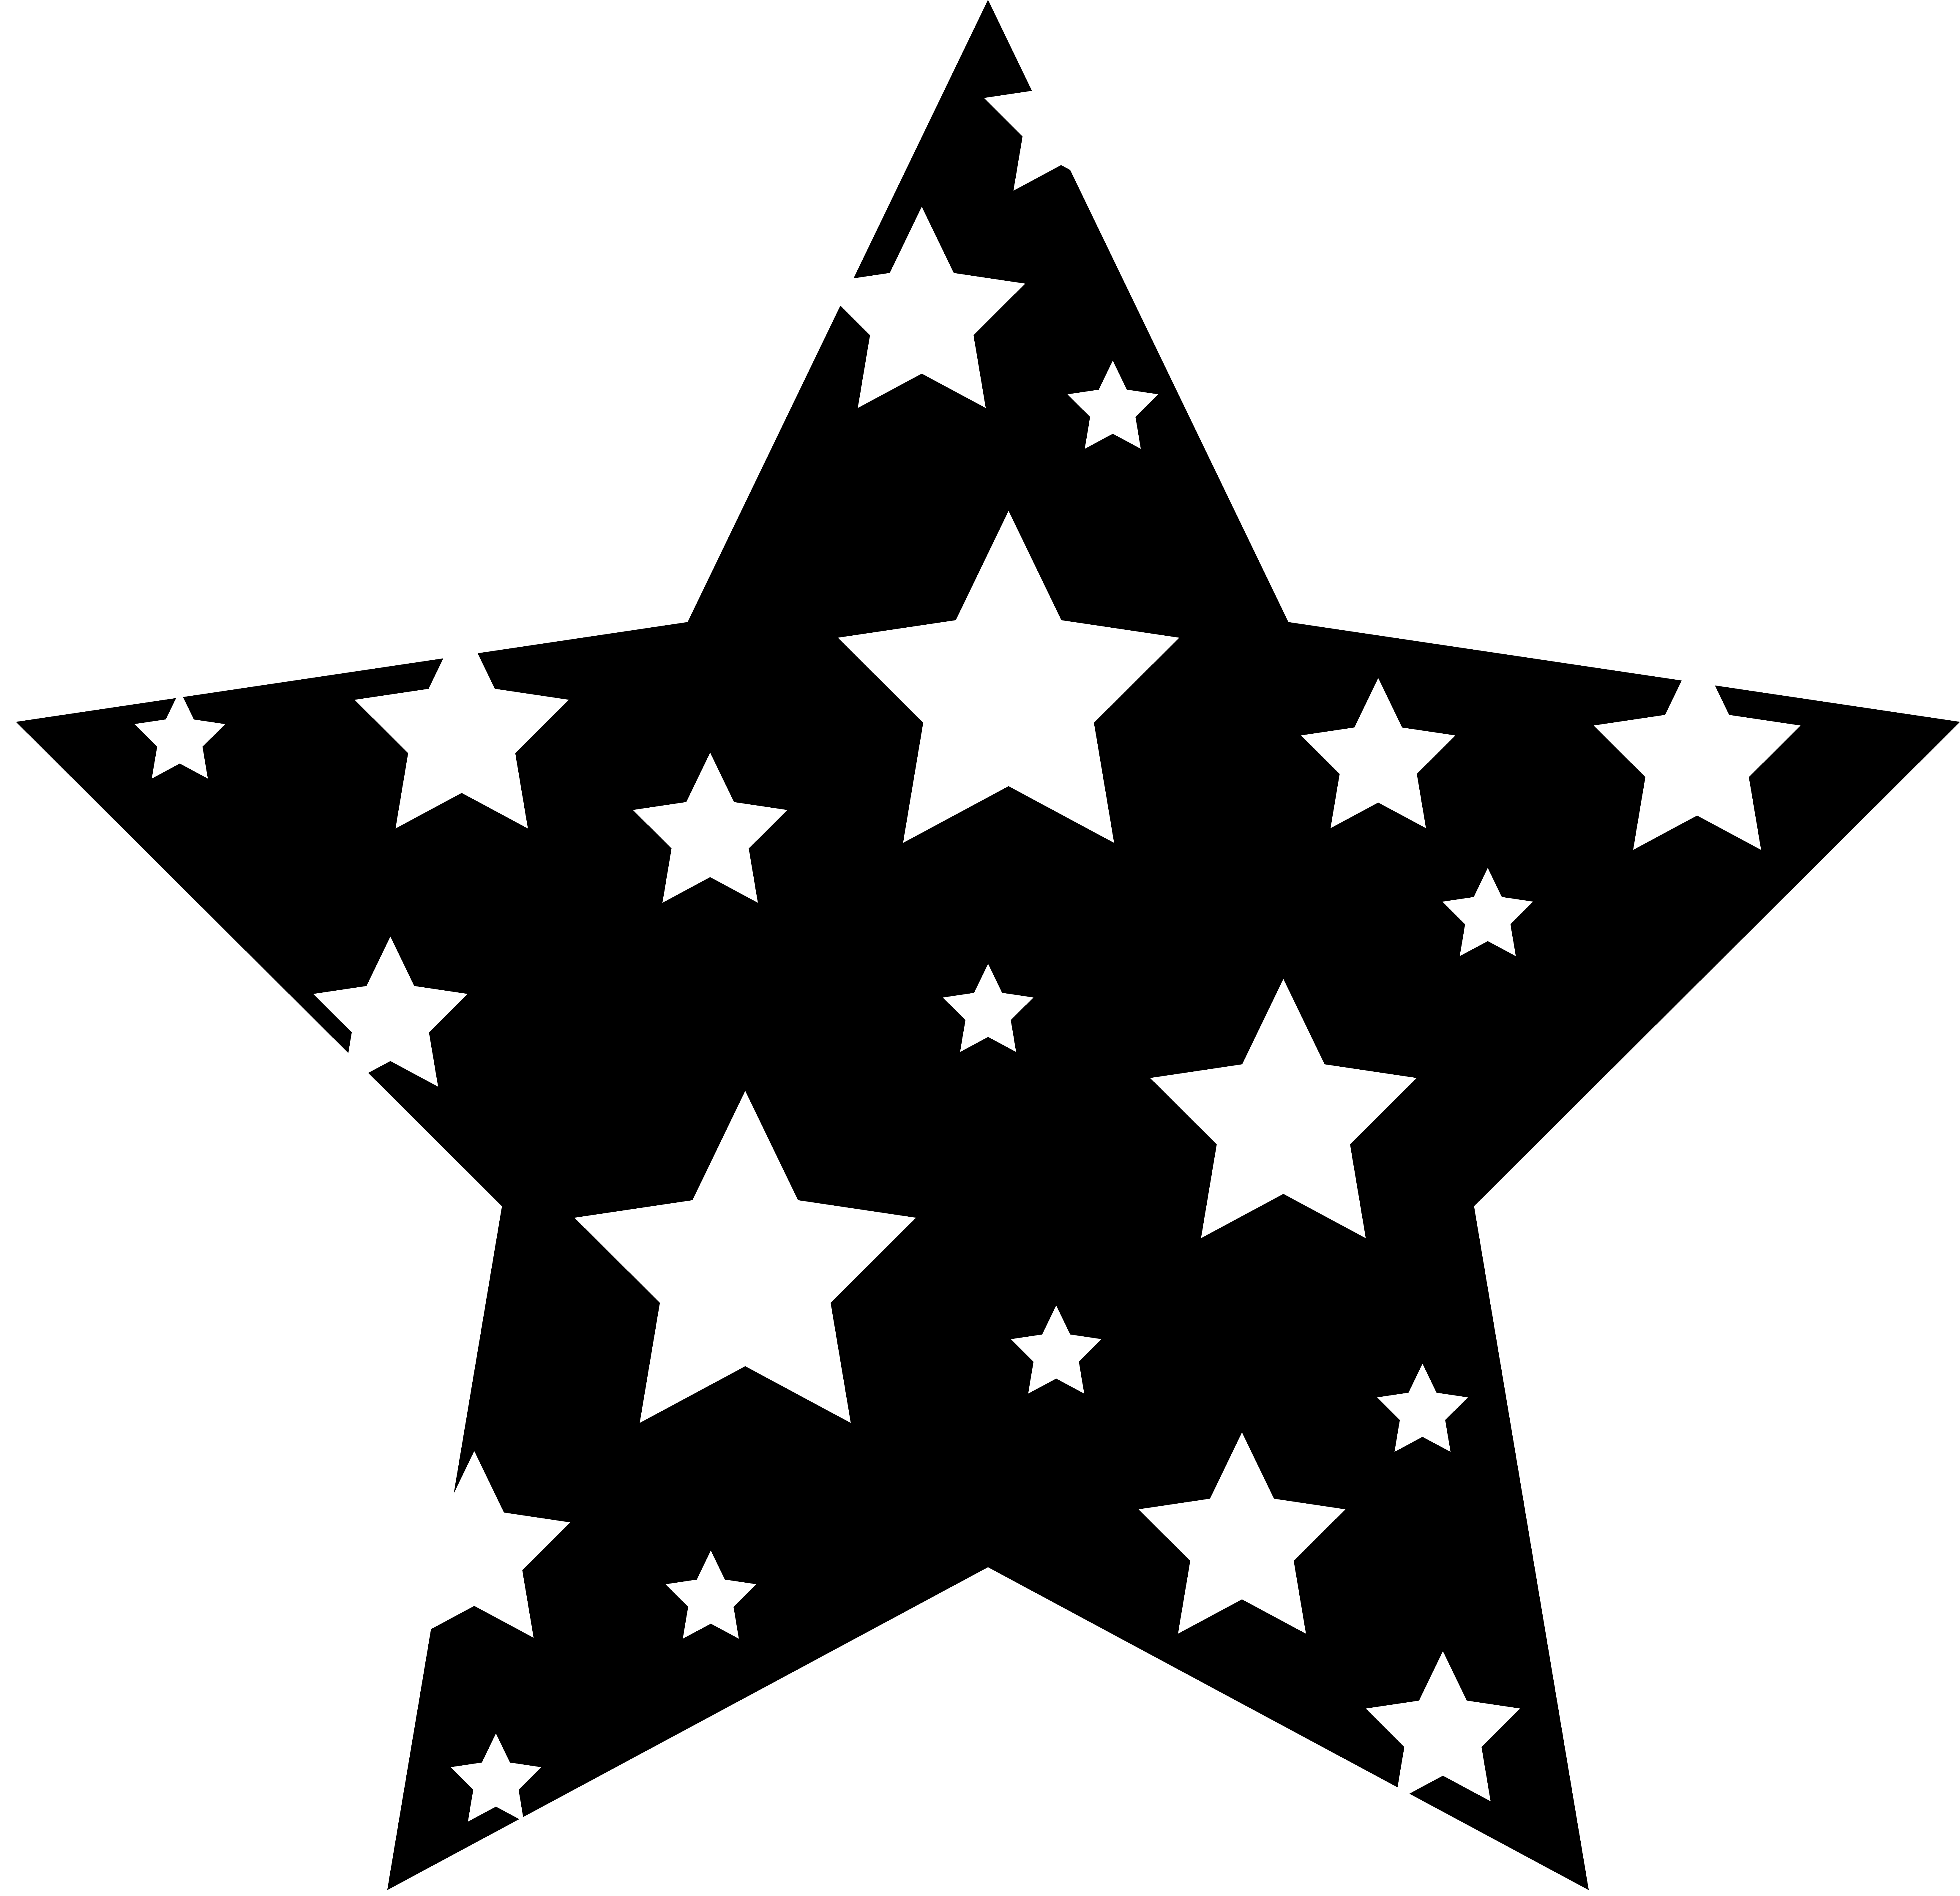 4th day sun moon and stars clipart black and white download Cartoon | Black and White Starry Star - Free Clip Art | Vinyl Ideas ... black and white download